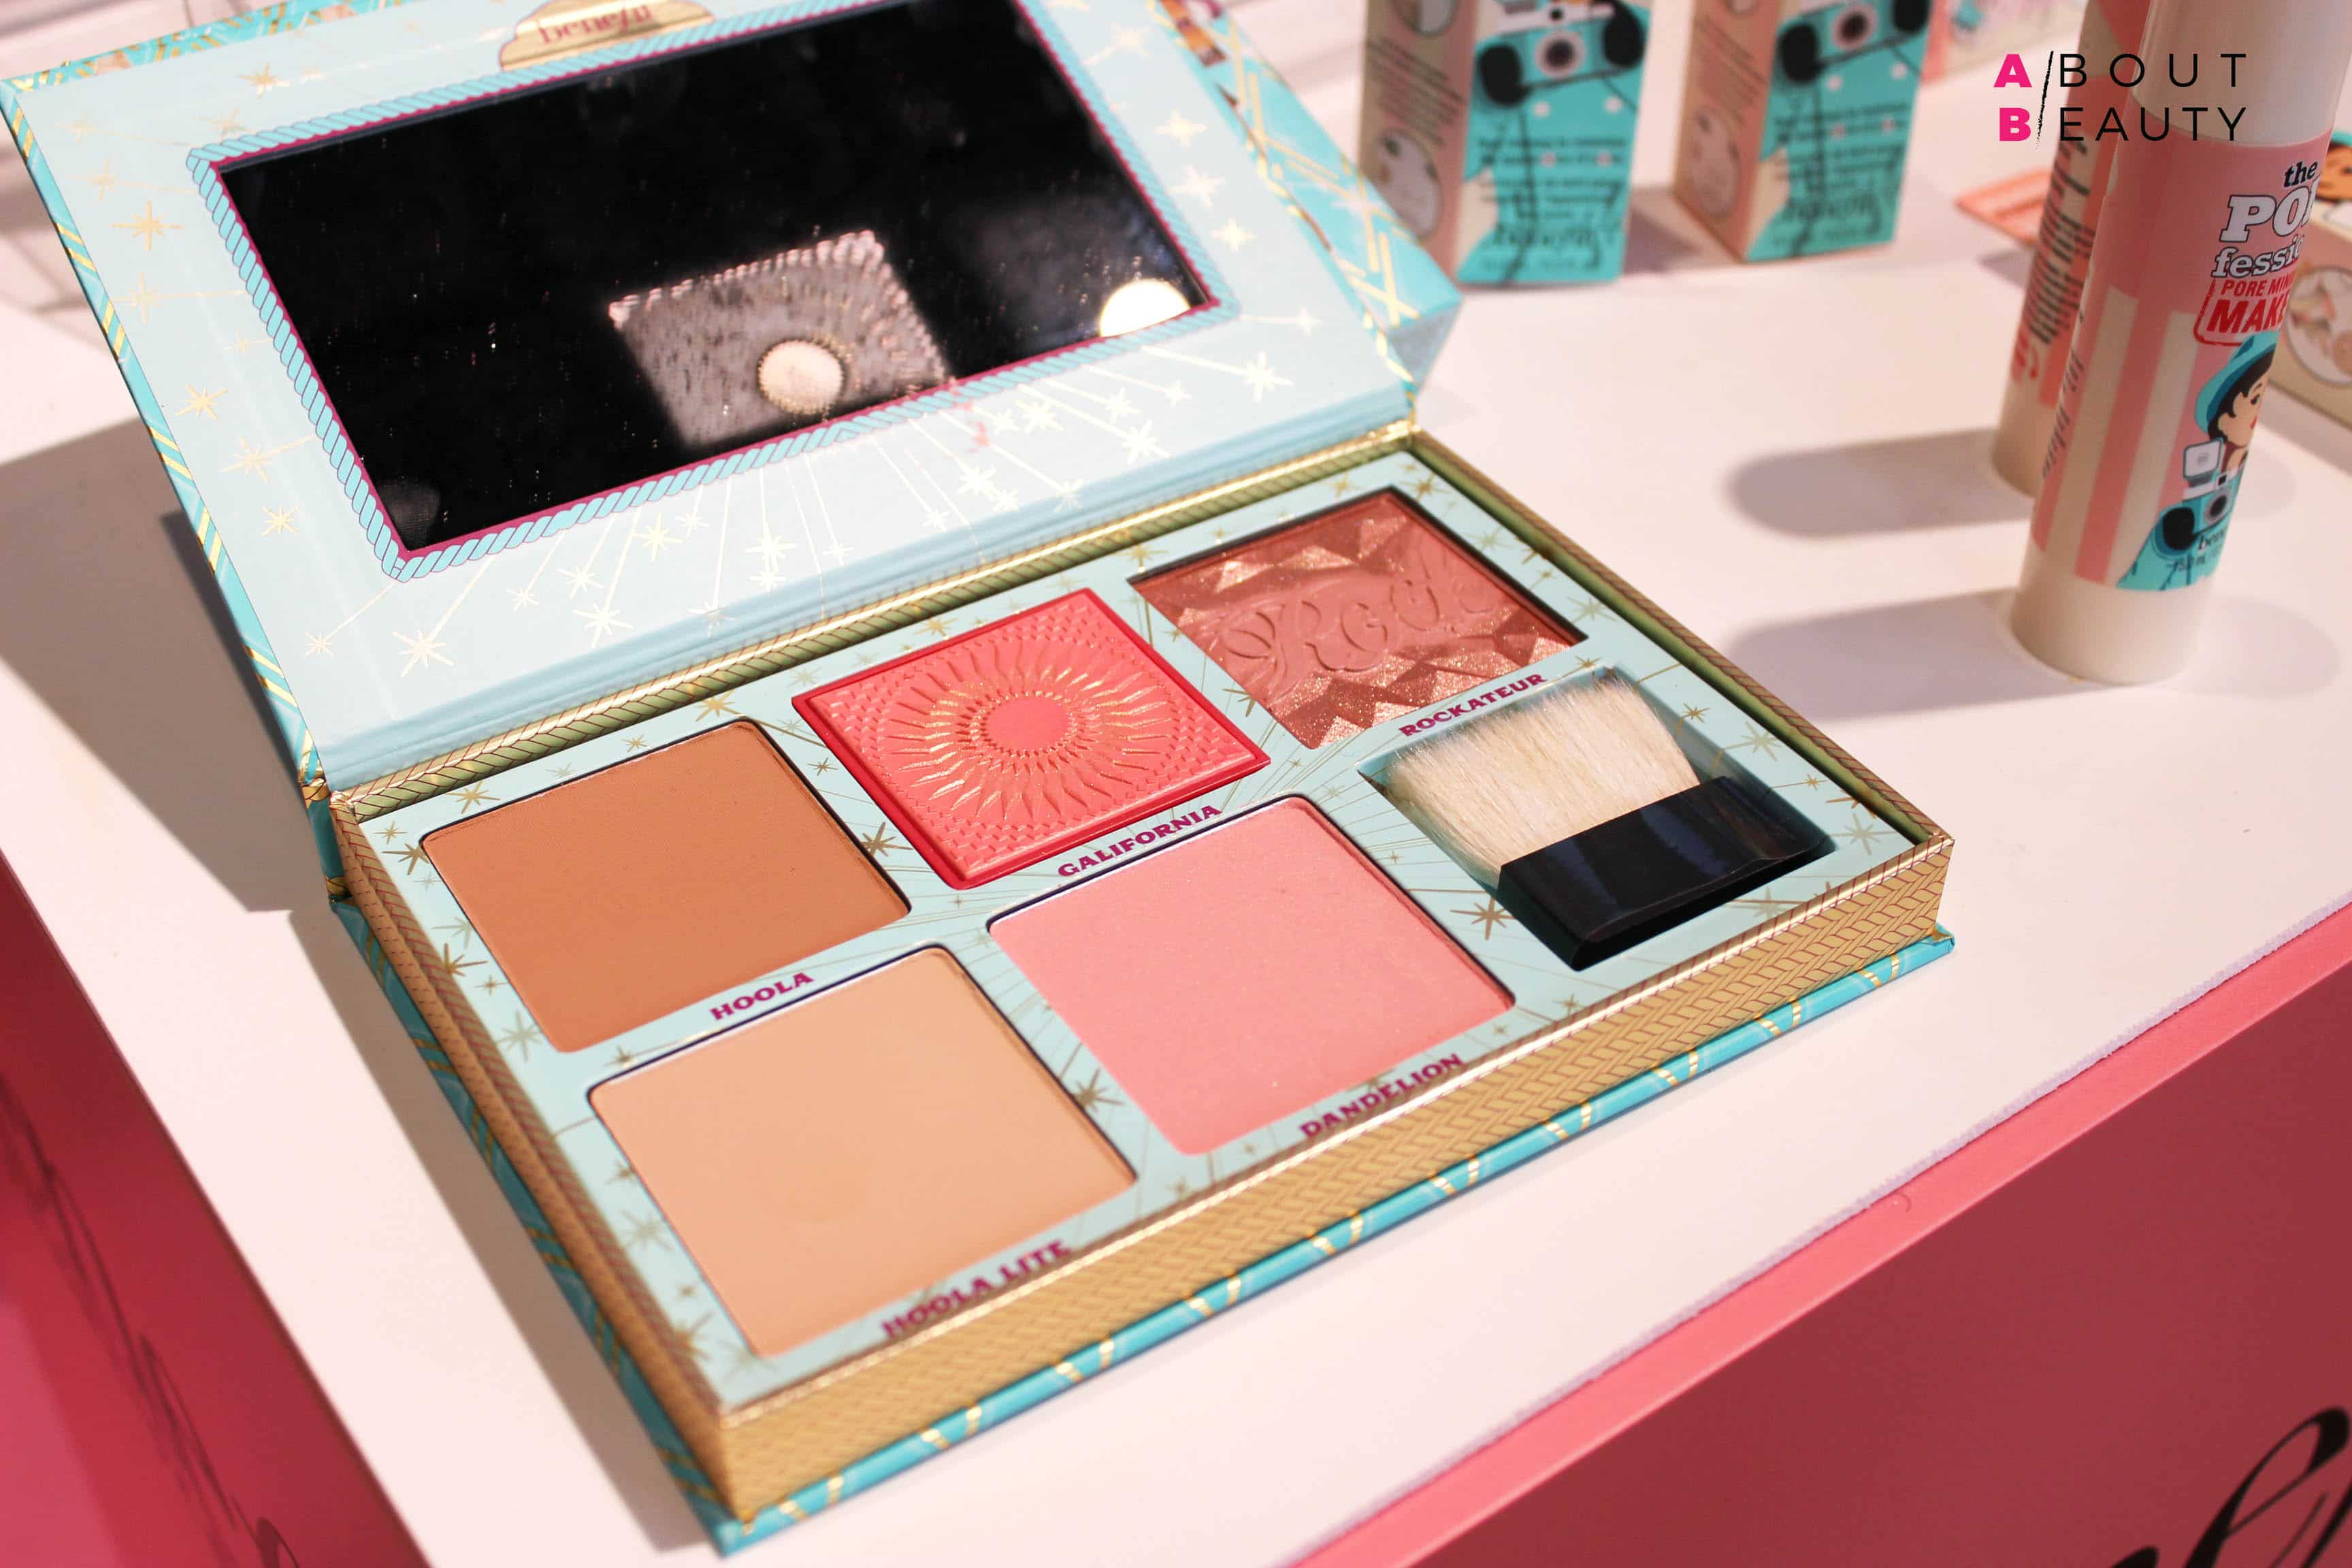 Benefit Cosmetics, tutte le novità make-up per la Primavera-Estate 2017 - Palette Cheek Parade